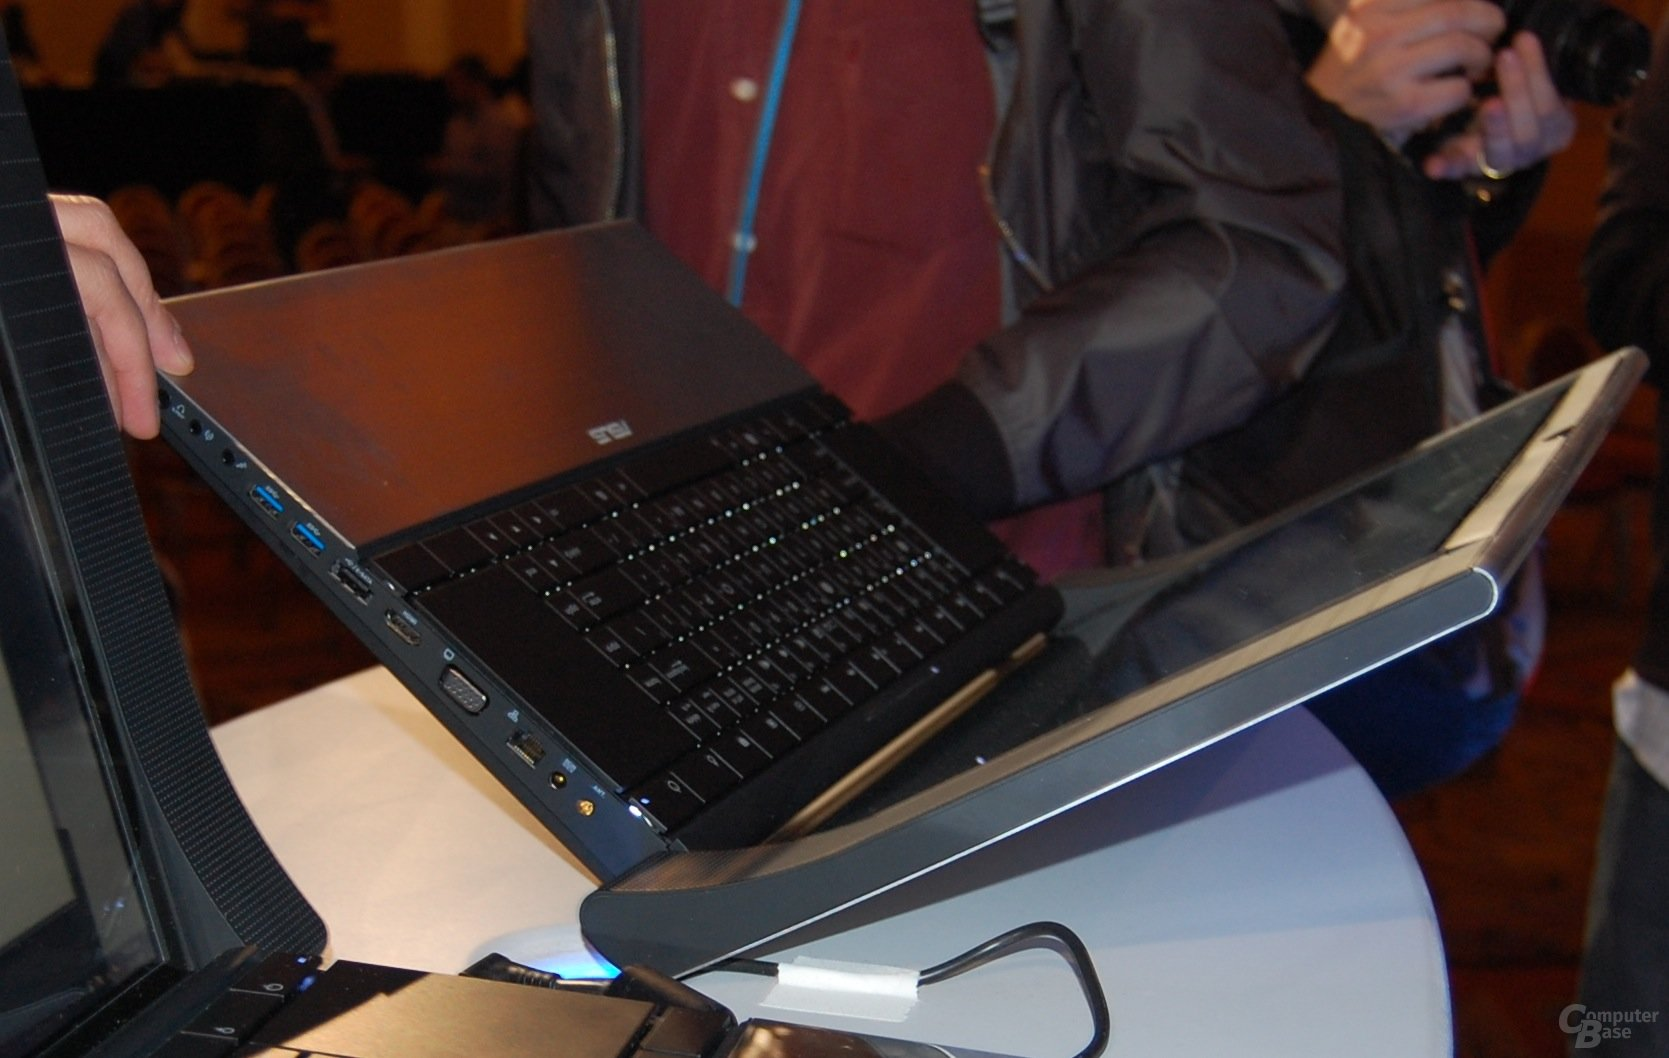 Asus NX90 Bang & Olufsen ICEpower Notebook